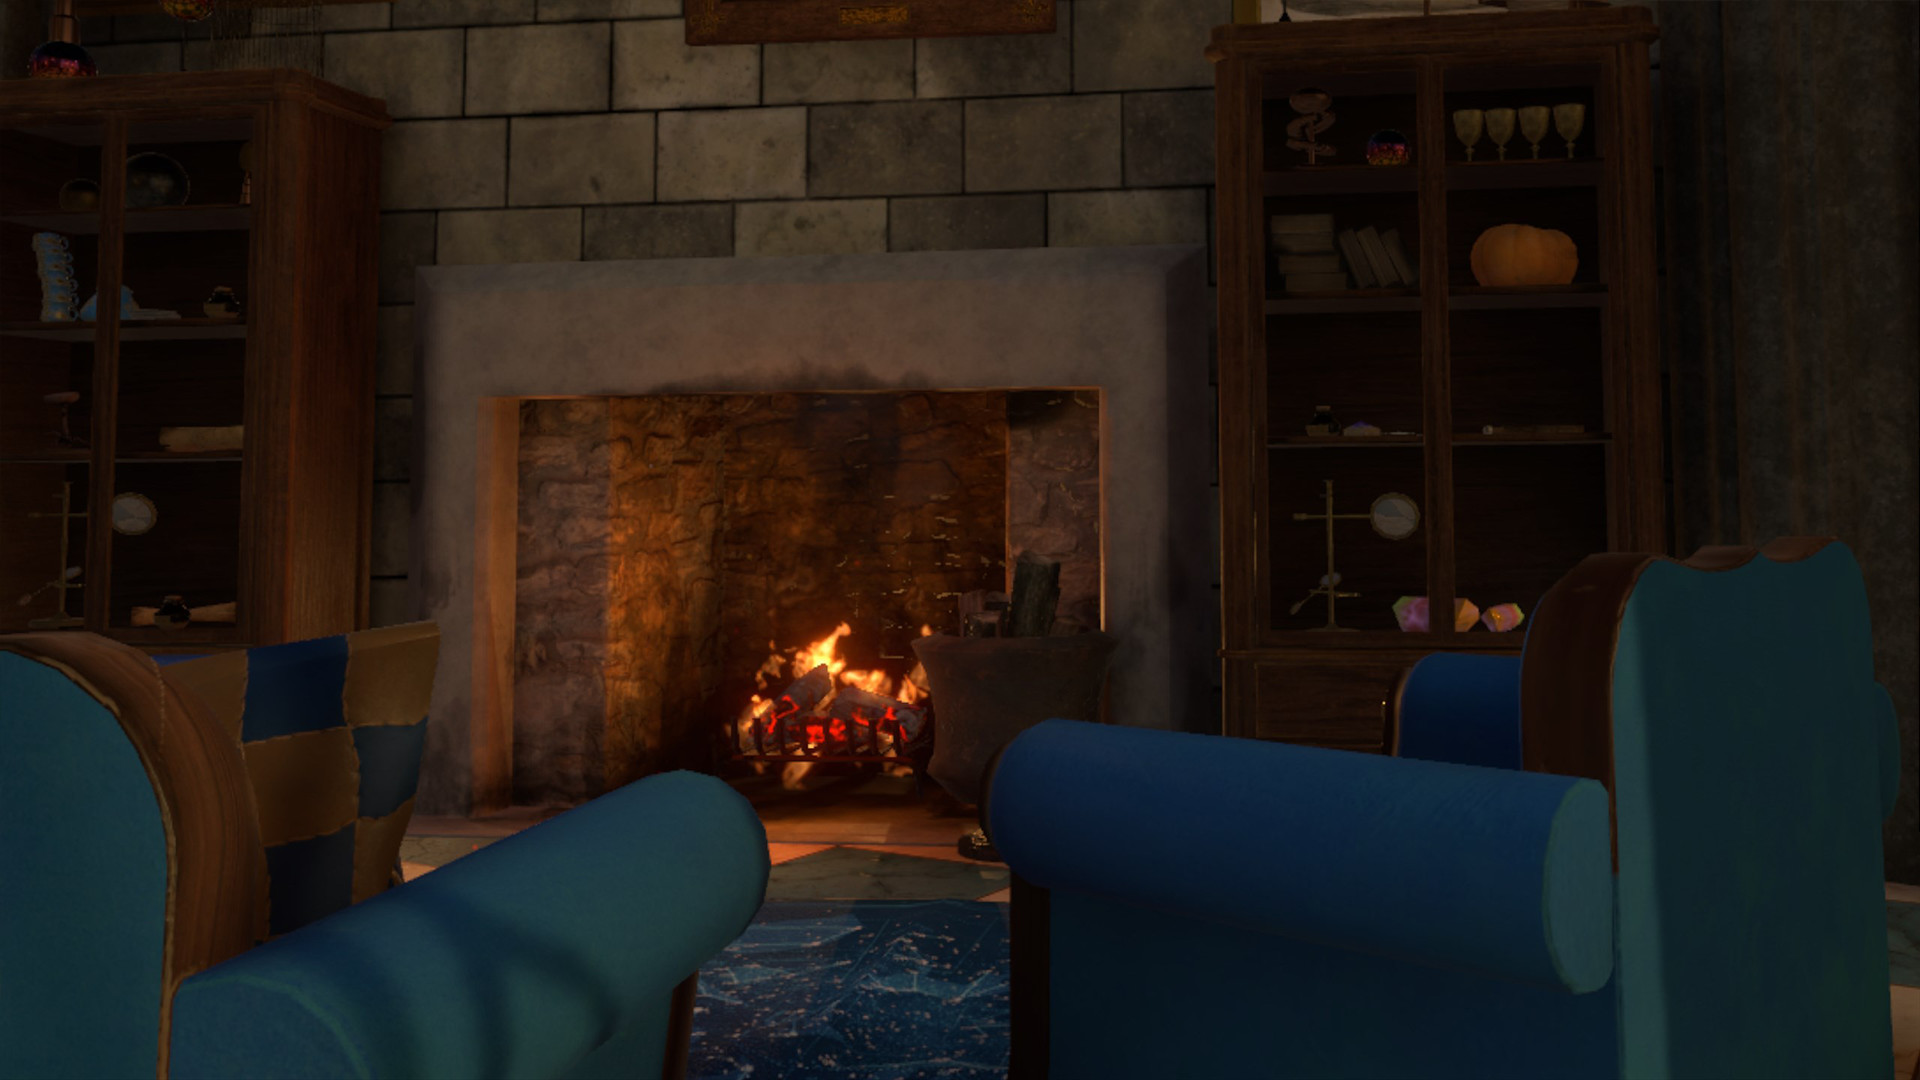 In-game screen capture - hearth